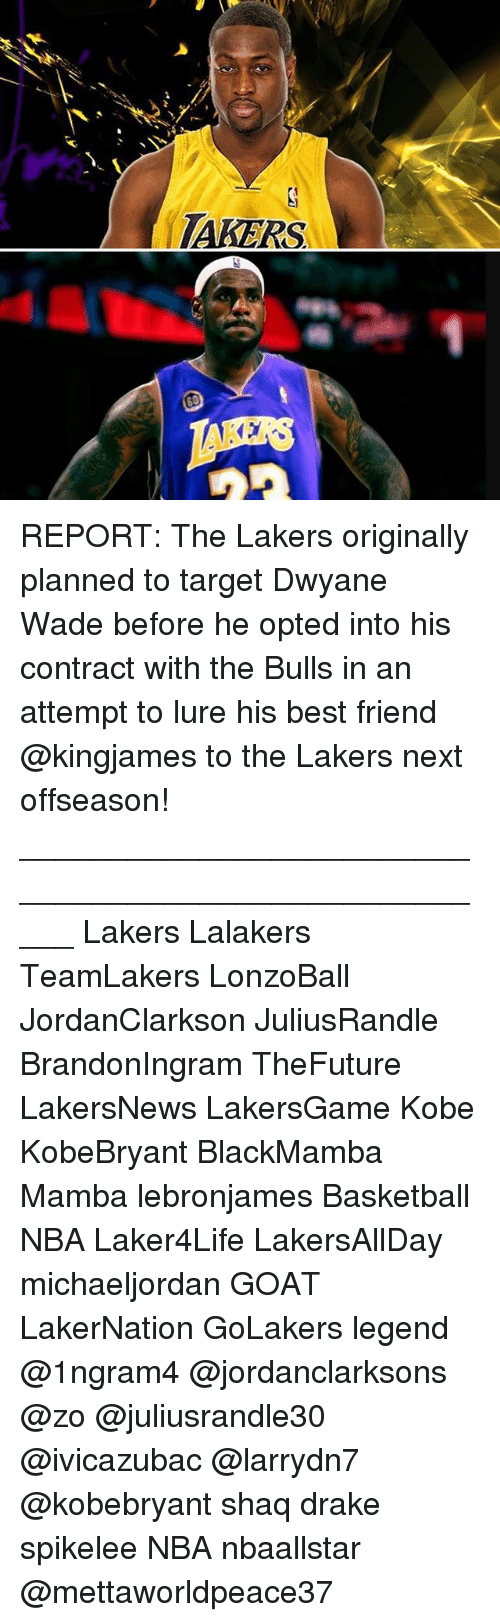 Basketball, Best Friend, and Drake: TAKERS REPORT: The Lakers originally planned to target Dwyane Wade before he opted into his contract with the Bulls in an attempt to lure his best friend @kingjames to the Lakers next offseason! _____________________________________________________ Lakers Lalakers TeamLakers LonzoBall JordanClarkson JuliusRandle BrandonIngram TheFuture LakersNews LakersGame Kobe KobeBryant BlackMamba Mamba lebronjames Basketball NBA Laker4Life LakersAllDay michaeljordan GOAT LakerNation GoLakers legend @1ngram4 @jordanclarksons @zo @juliusrandle30 @ivicazubac @larrydn7 @kobebryant shaq drake spikelee NBA nbaallstar @mettaworldpeace37